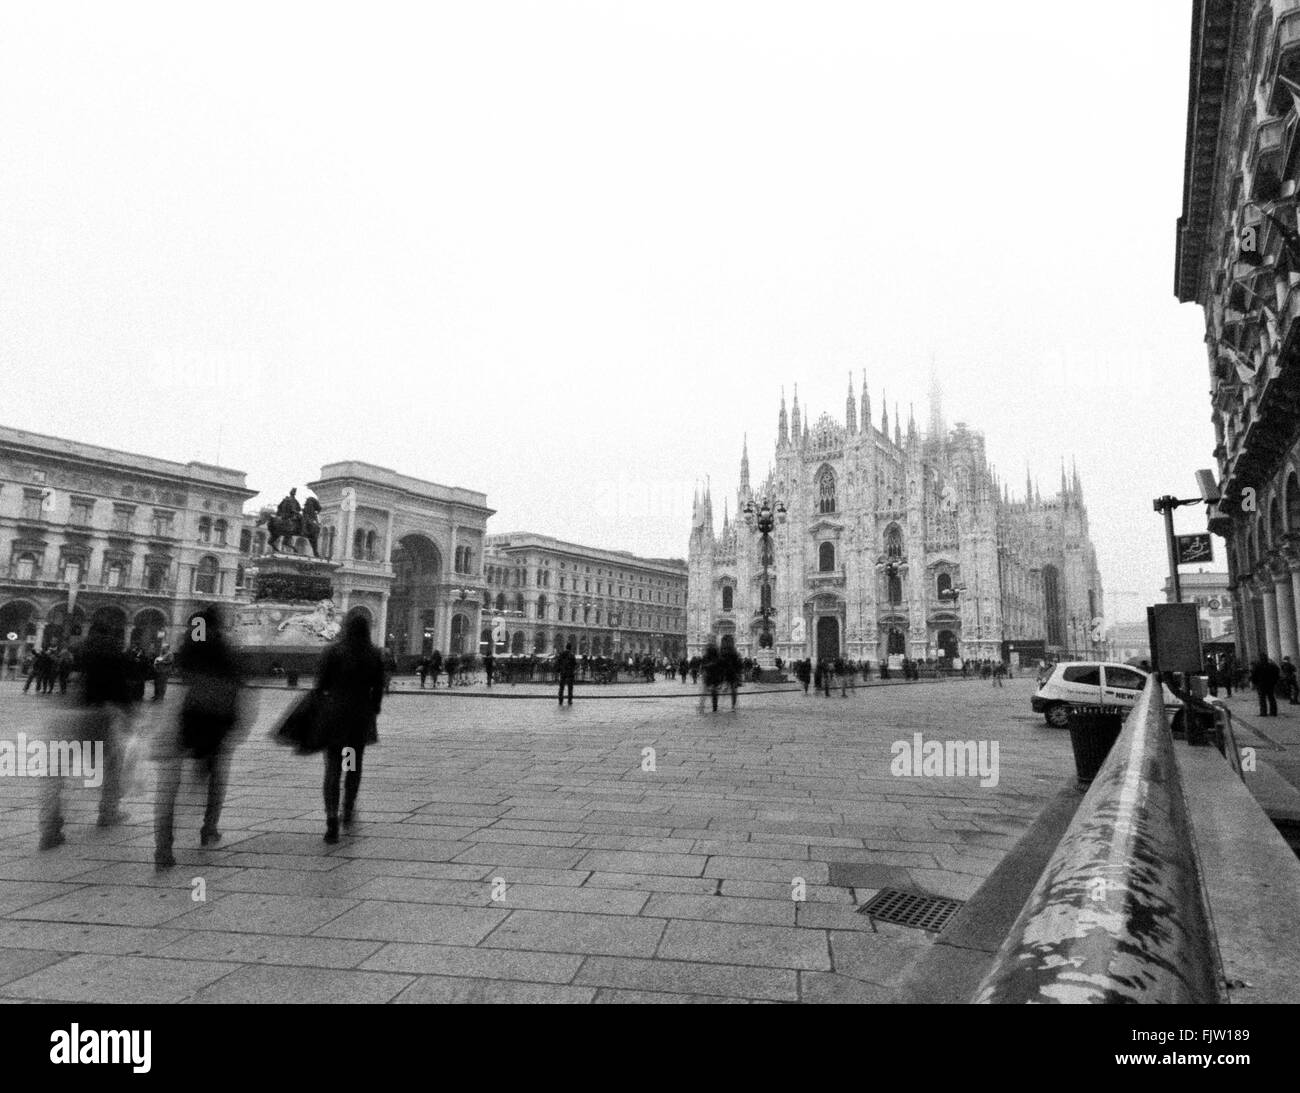 Blurred Motion On People Walking On Street Against Duomo Di Milano - Stock Image